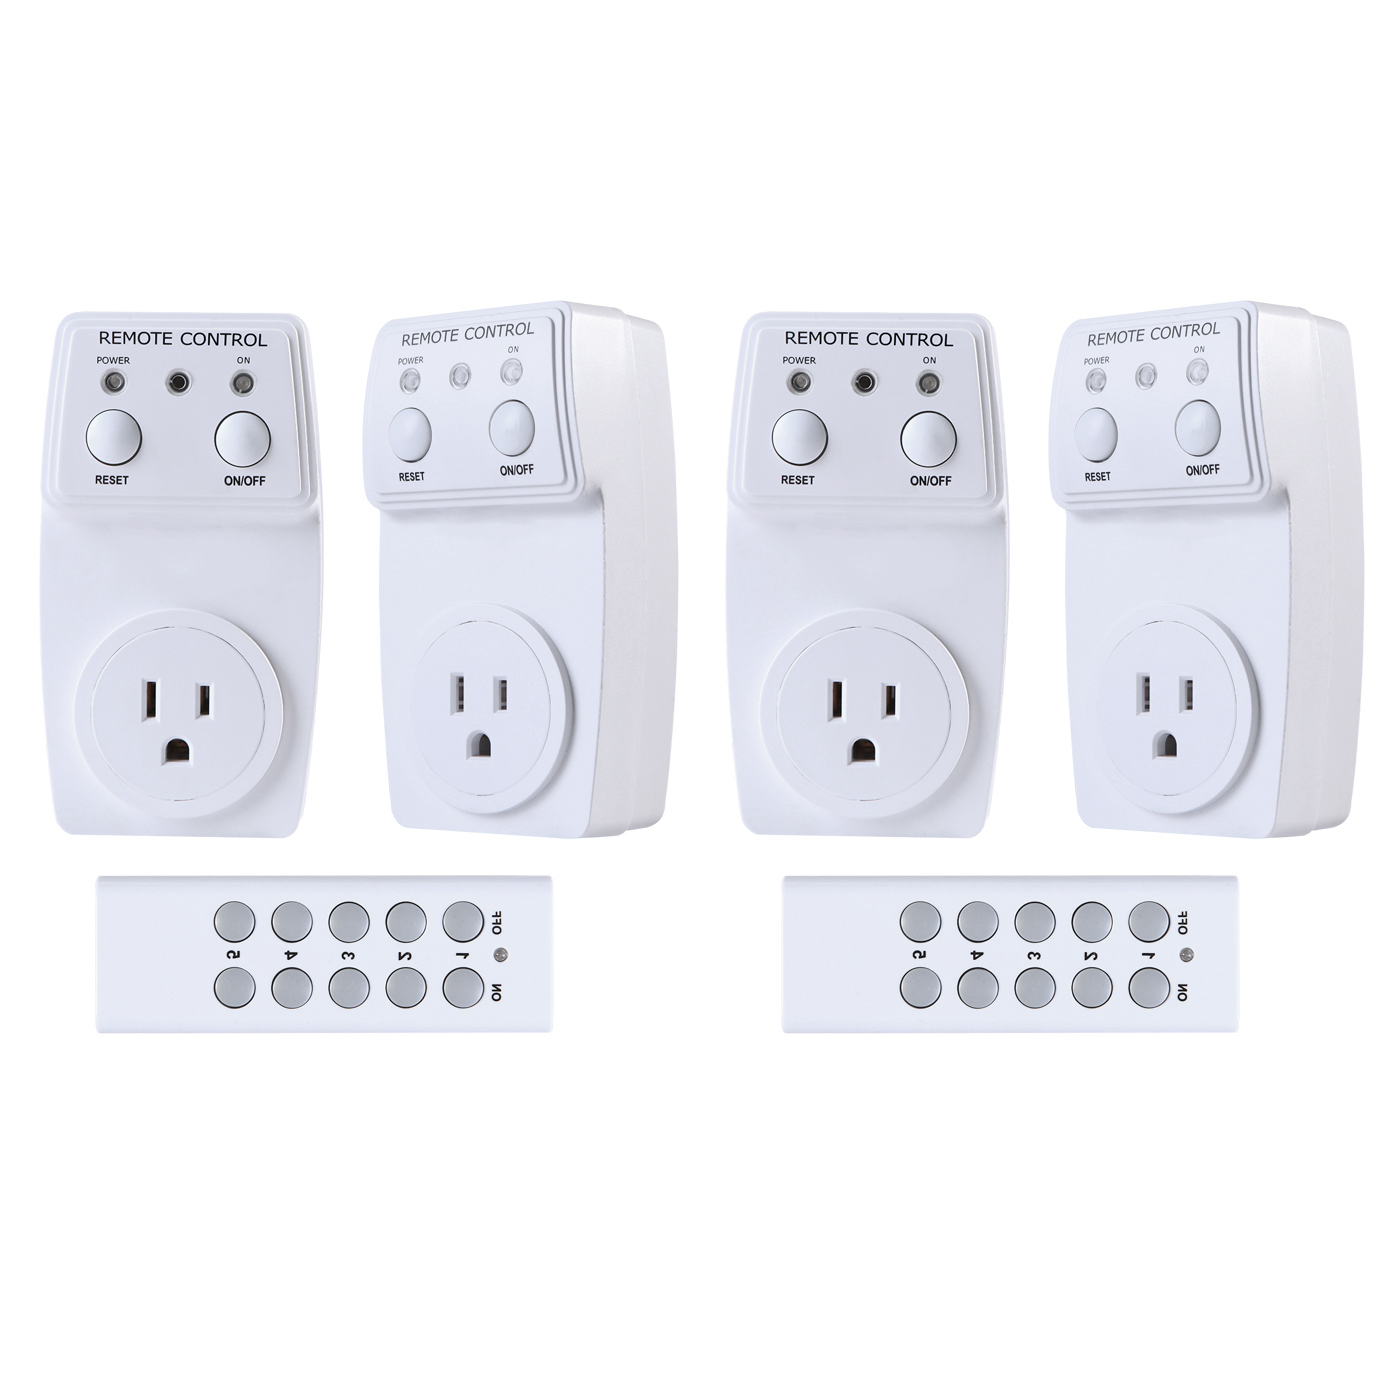 Switch Controls One Set Of Outlets As Well As Another Single Outlet